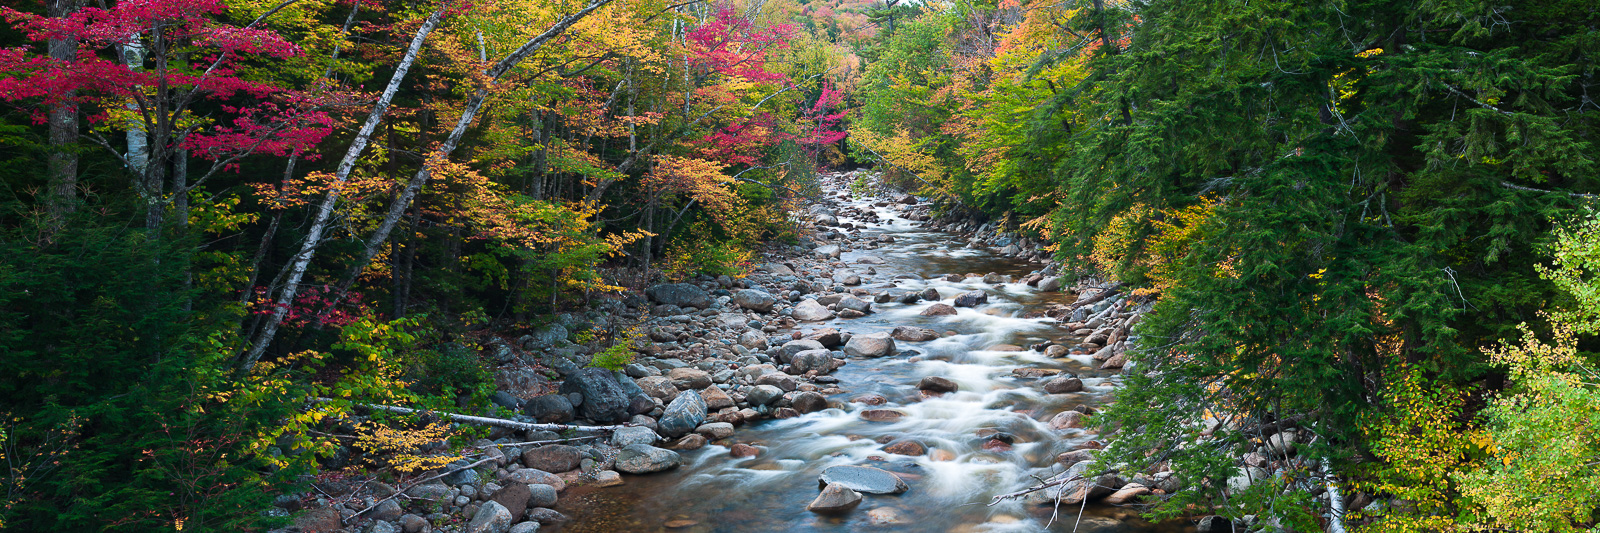 Shades of greens, yellows, and scattered magenta highlight Sawyer River welcoming in the cool autumn days.